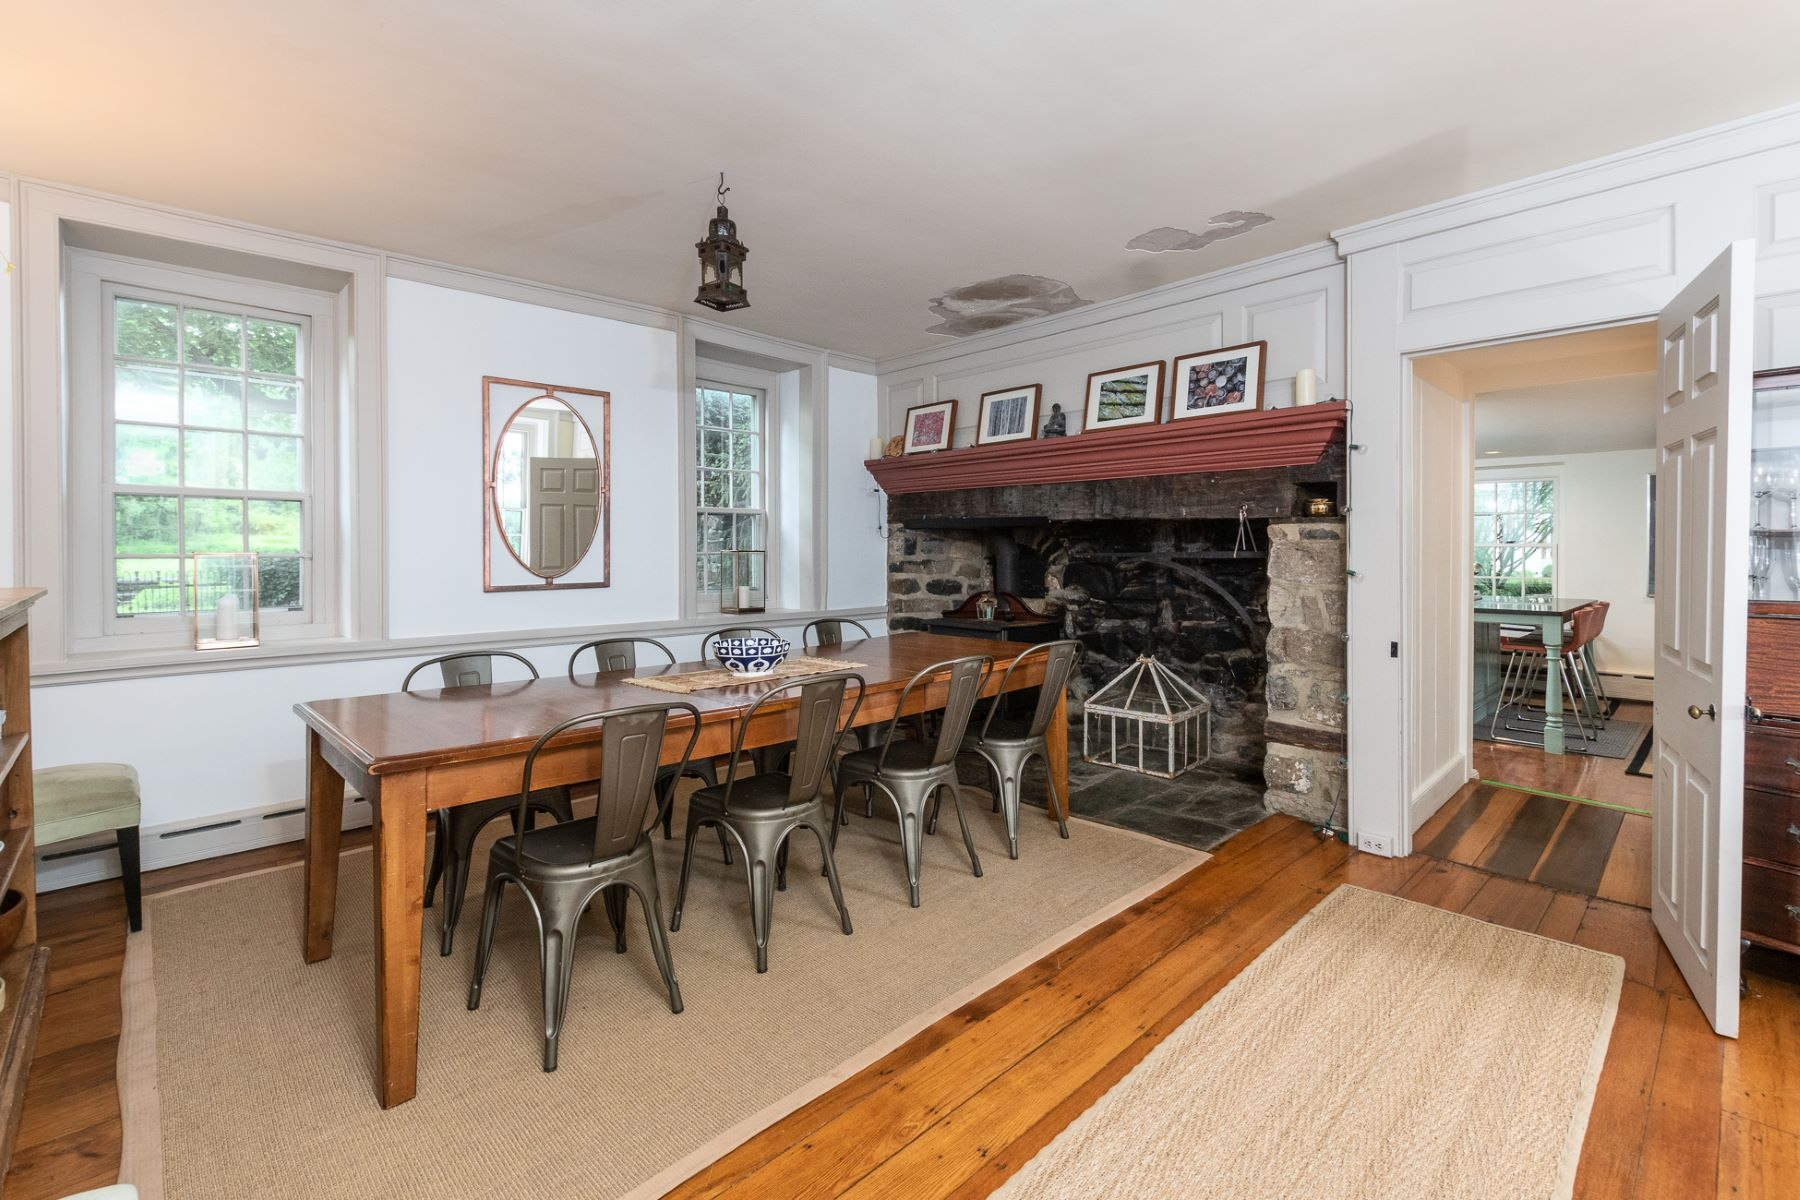 Additional photo for property listing at Lovely Bucks County Stone Farmhouse for Rent 5736 Stoney Hill Road Main House, New Hope, Pennsylvania 18938 United States